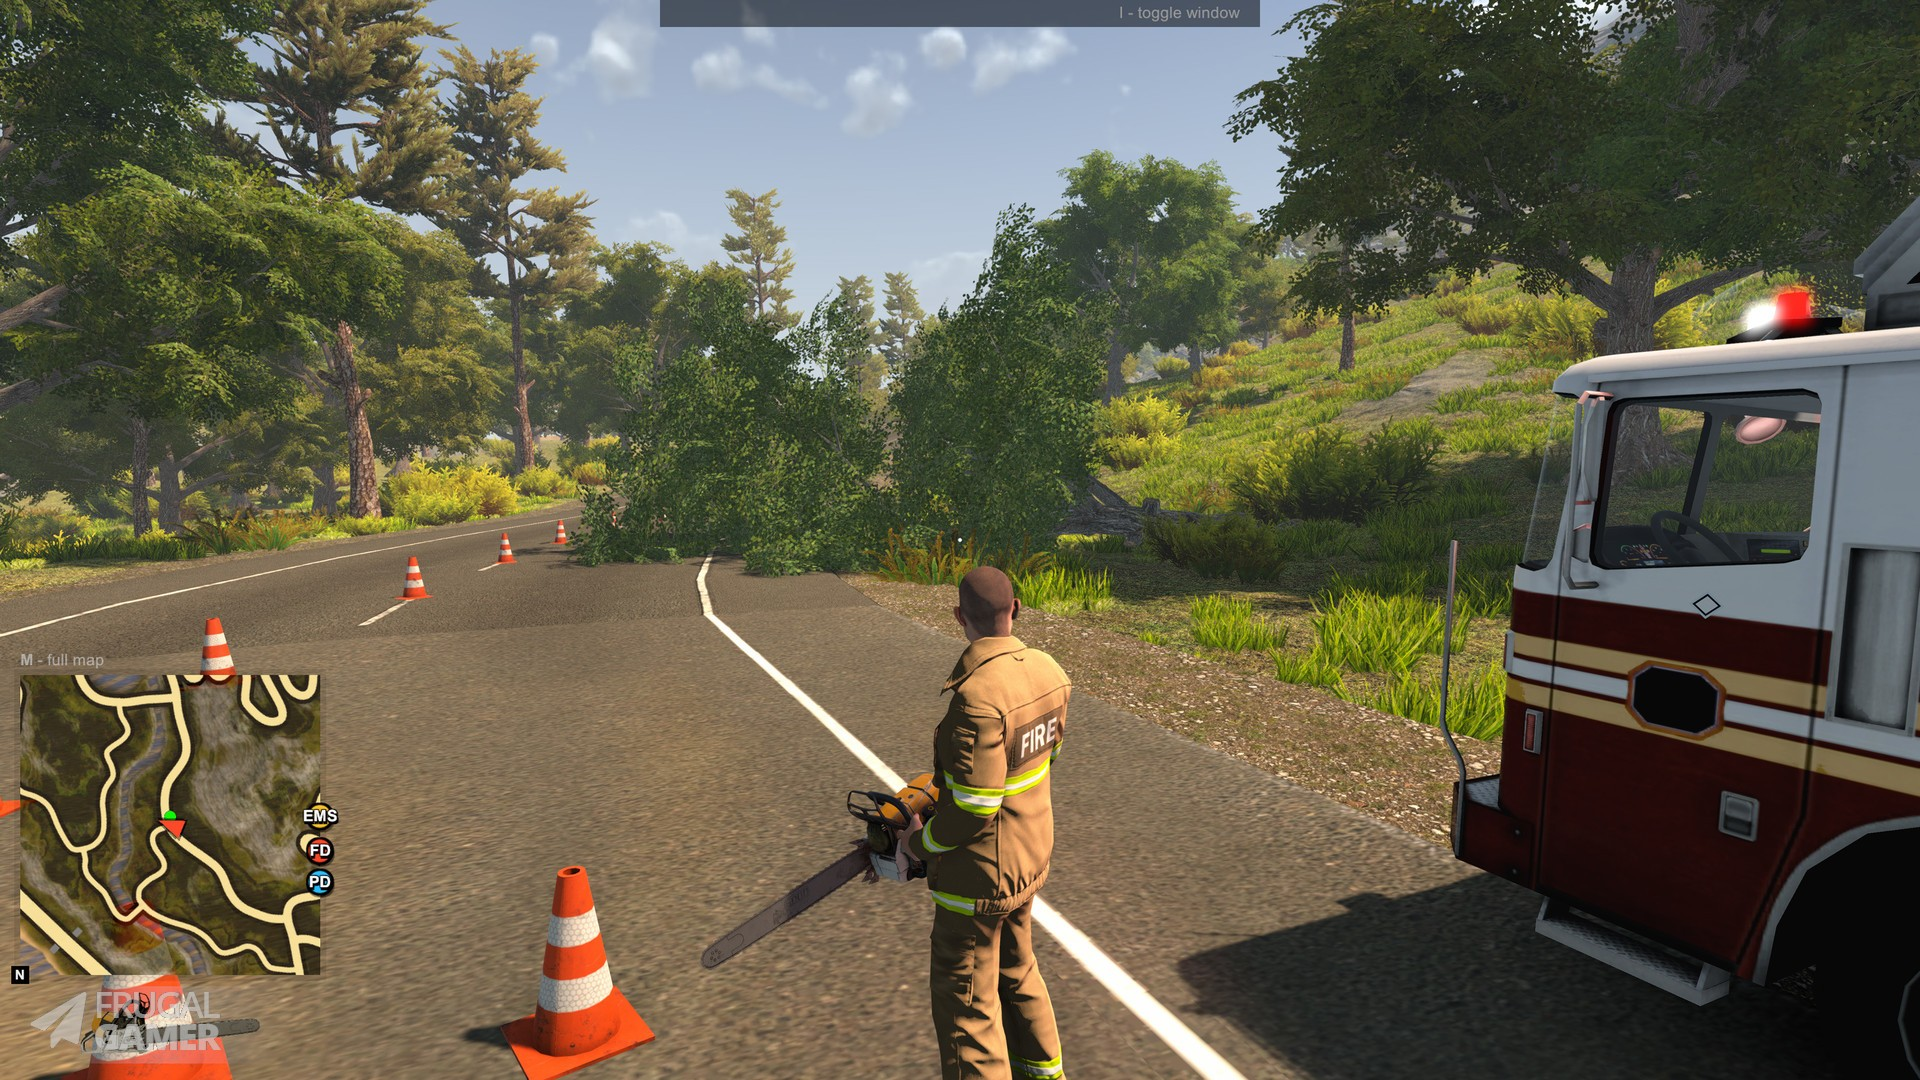 Flashing Lights Police Firefighting Emergency Services Simulator Windows Pc And Mac Save 60 On Steam Key